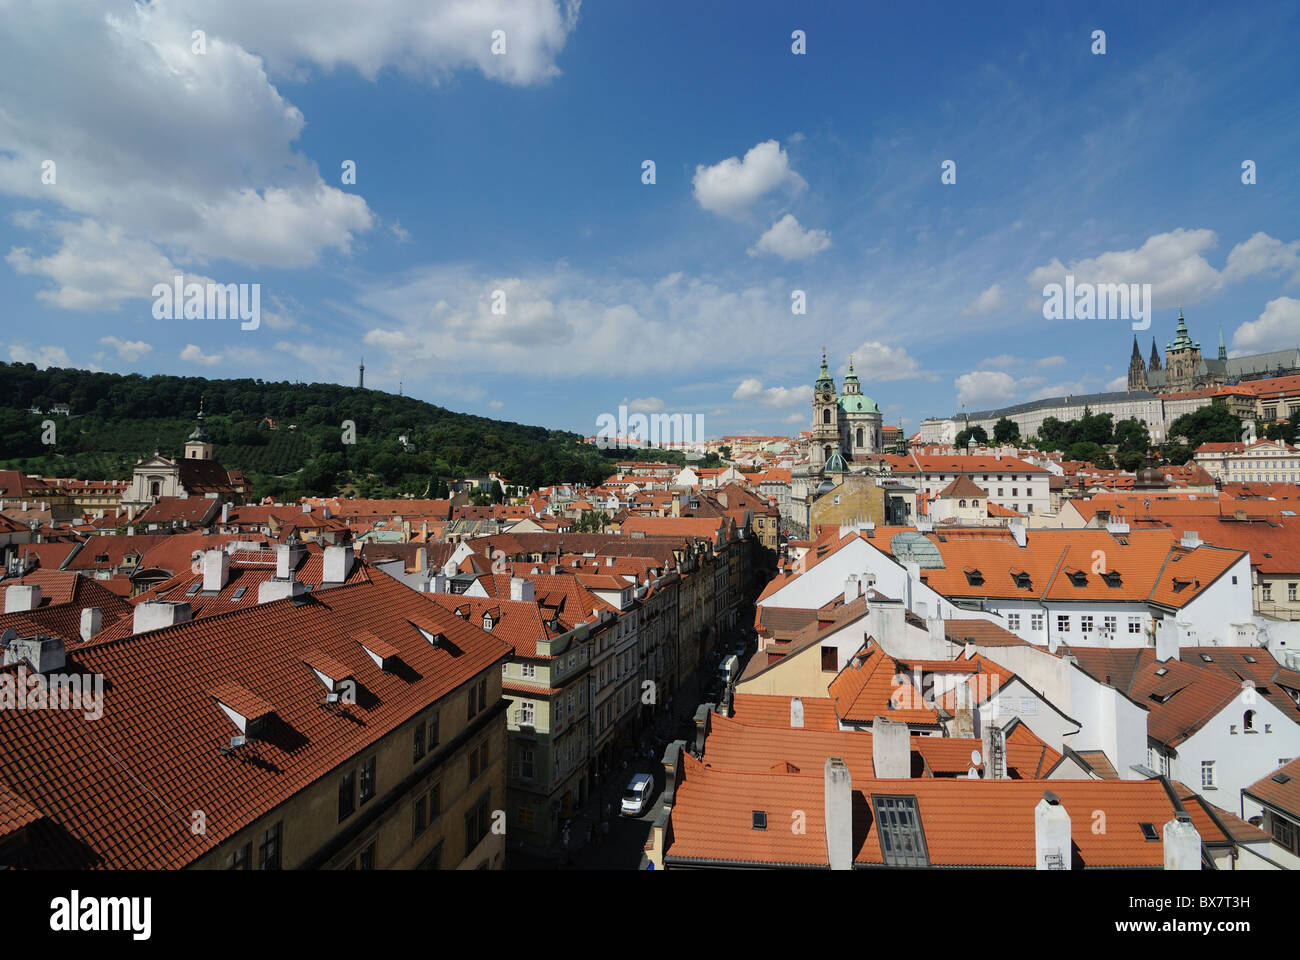 Aerial View of Prague, Czech Republic. - Stock Image